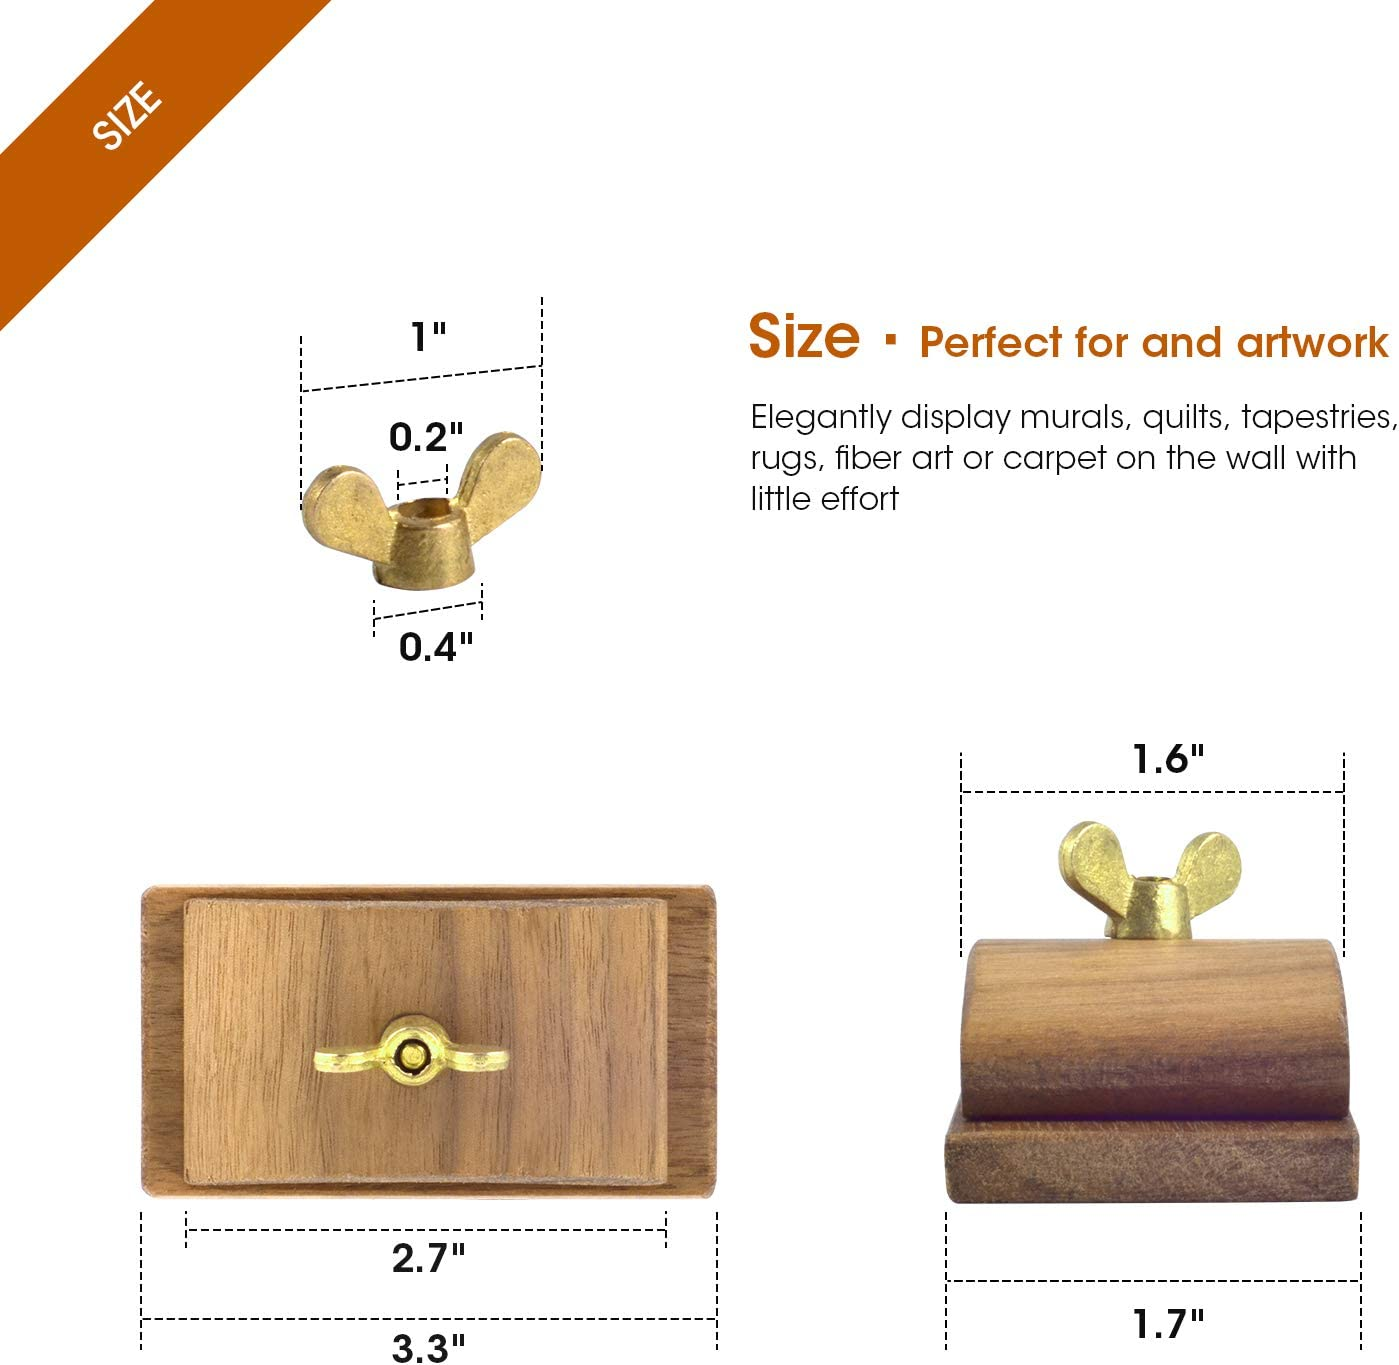 3.3 x 1.7 inches Four Walnut Wood Quilt Hang-Ups Clamps Clips Large